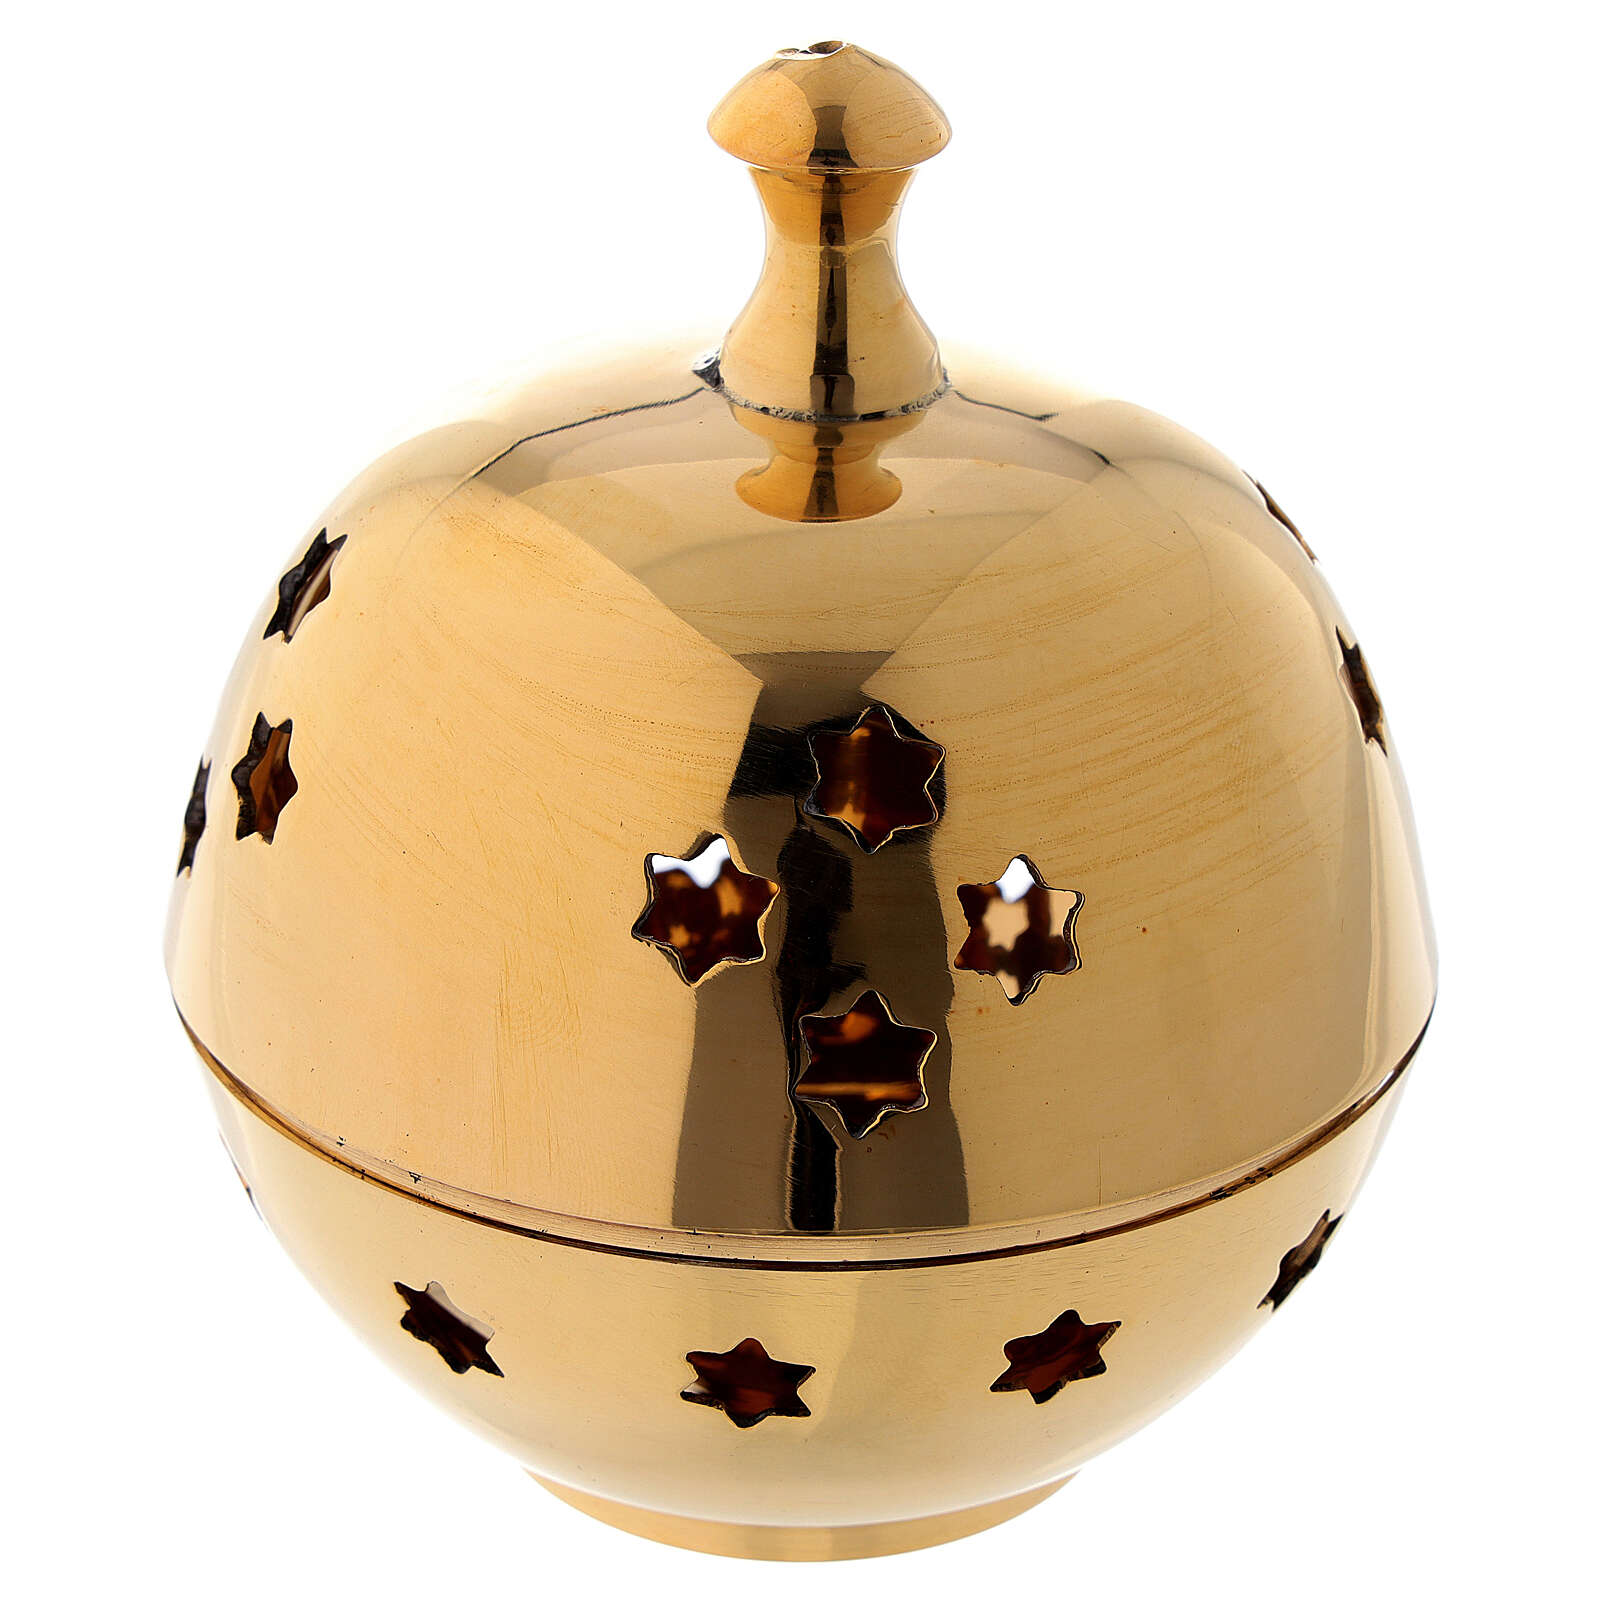 Incense burner with round cup and star shaped holes diameter 3 in 3